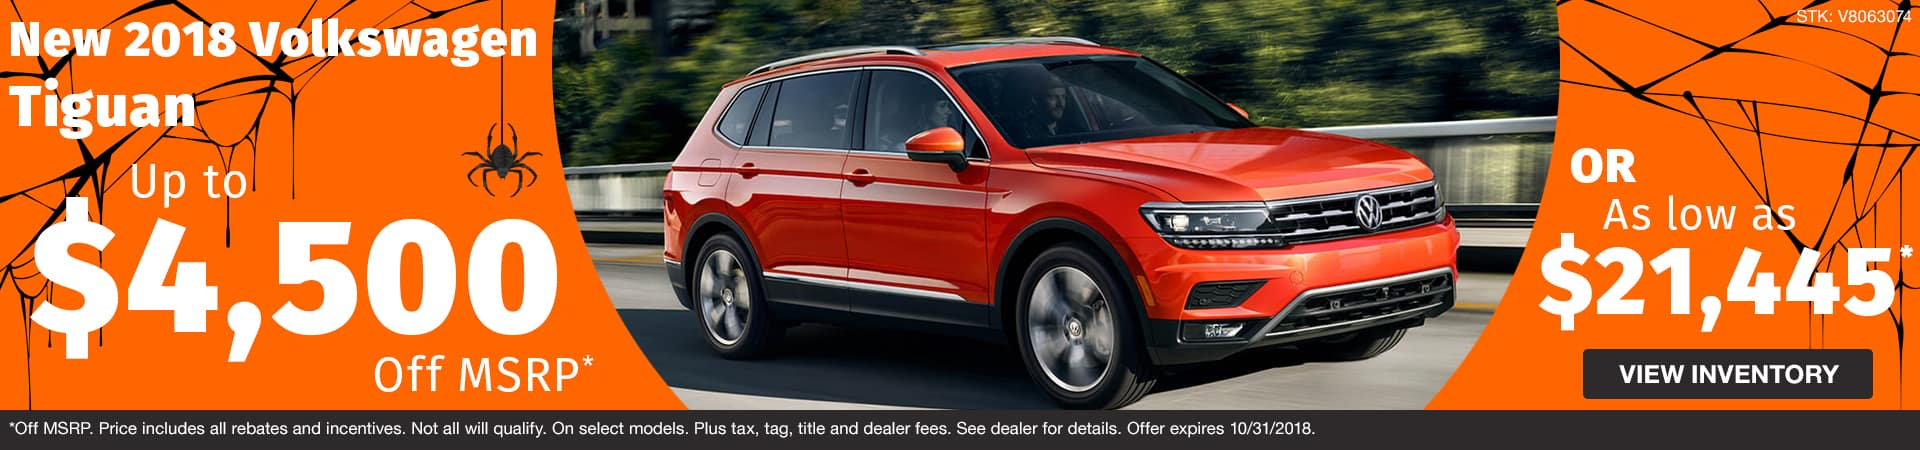 Drive home a new 2018 Volkswagen Tiguan starting at just $21,445 or up to $4,500 off MSRP in Murfreesboro TN